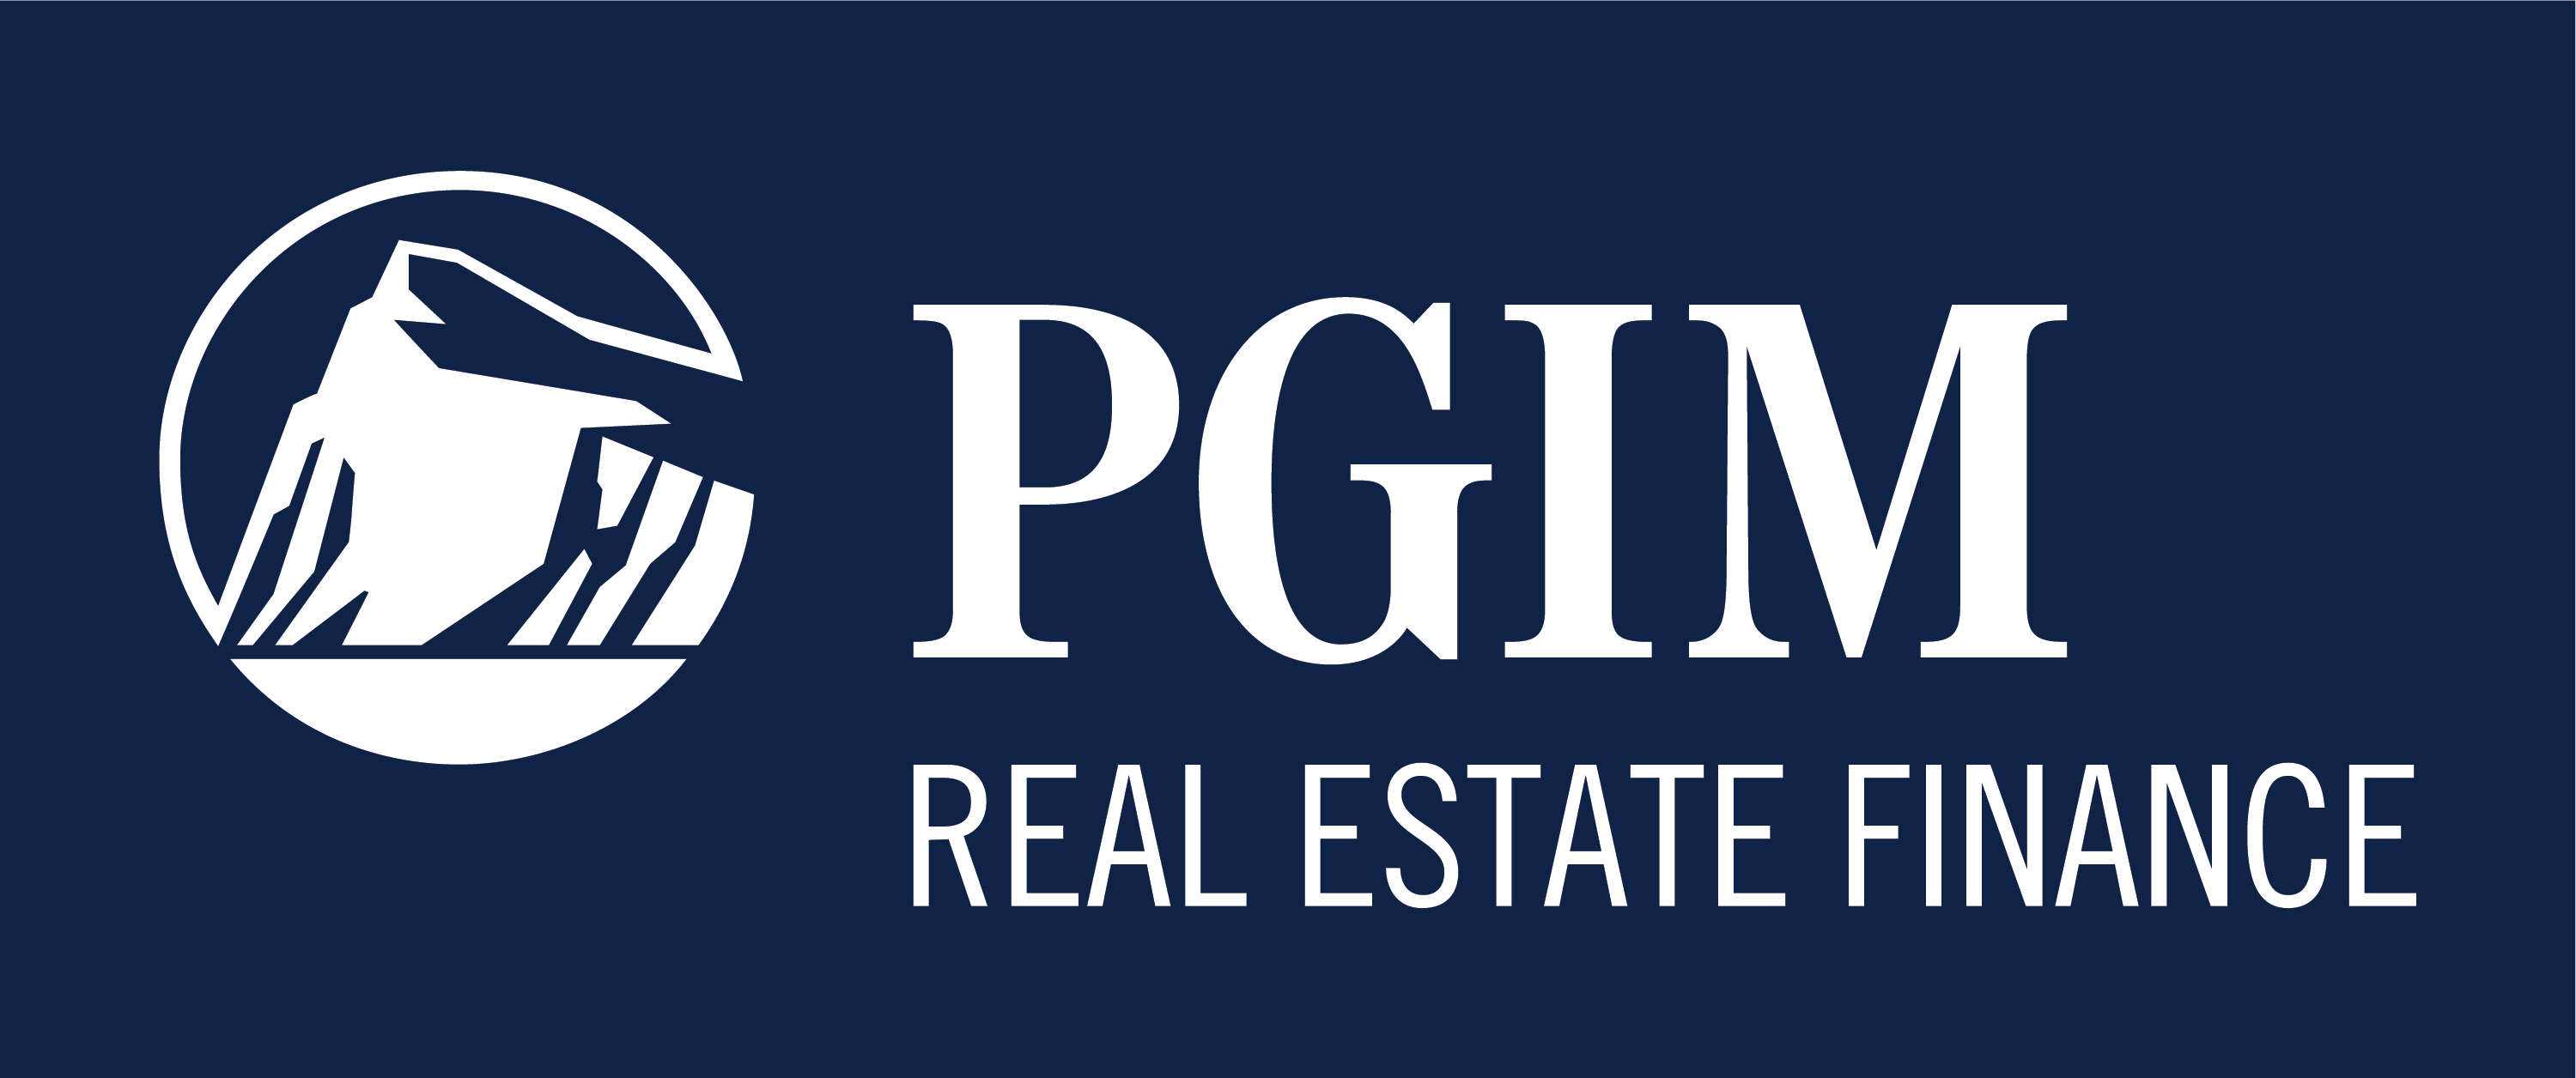 PGIM Real Estate